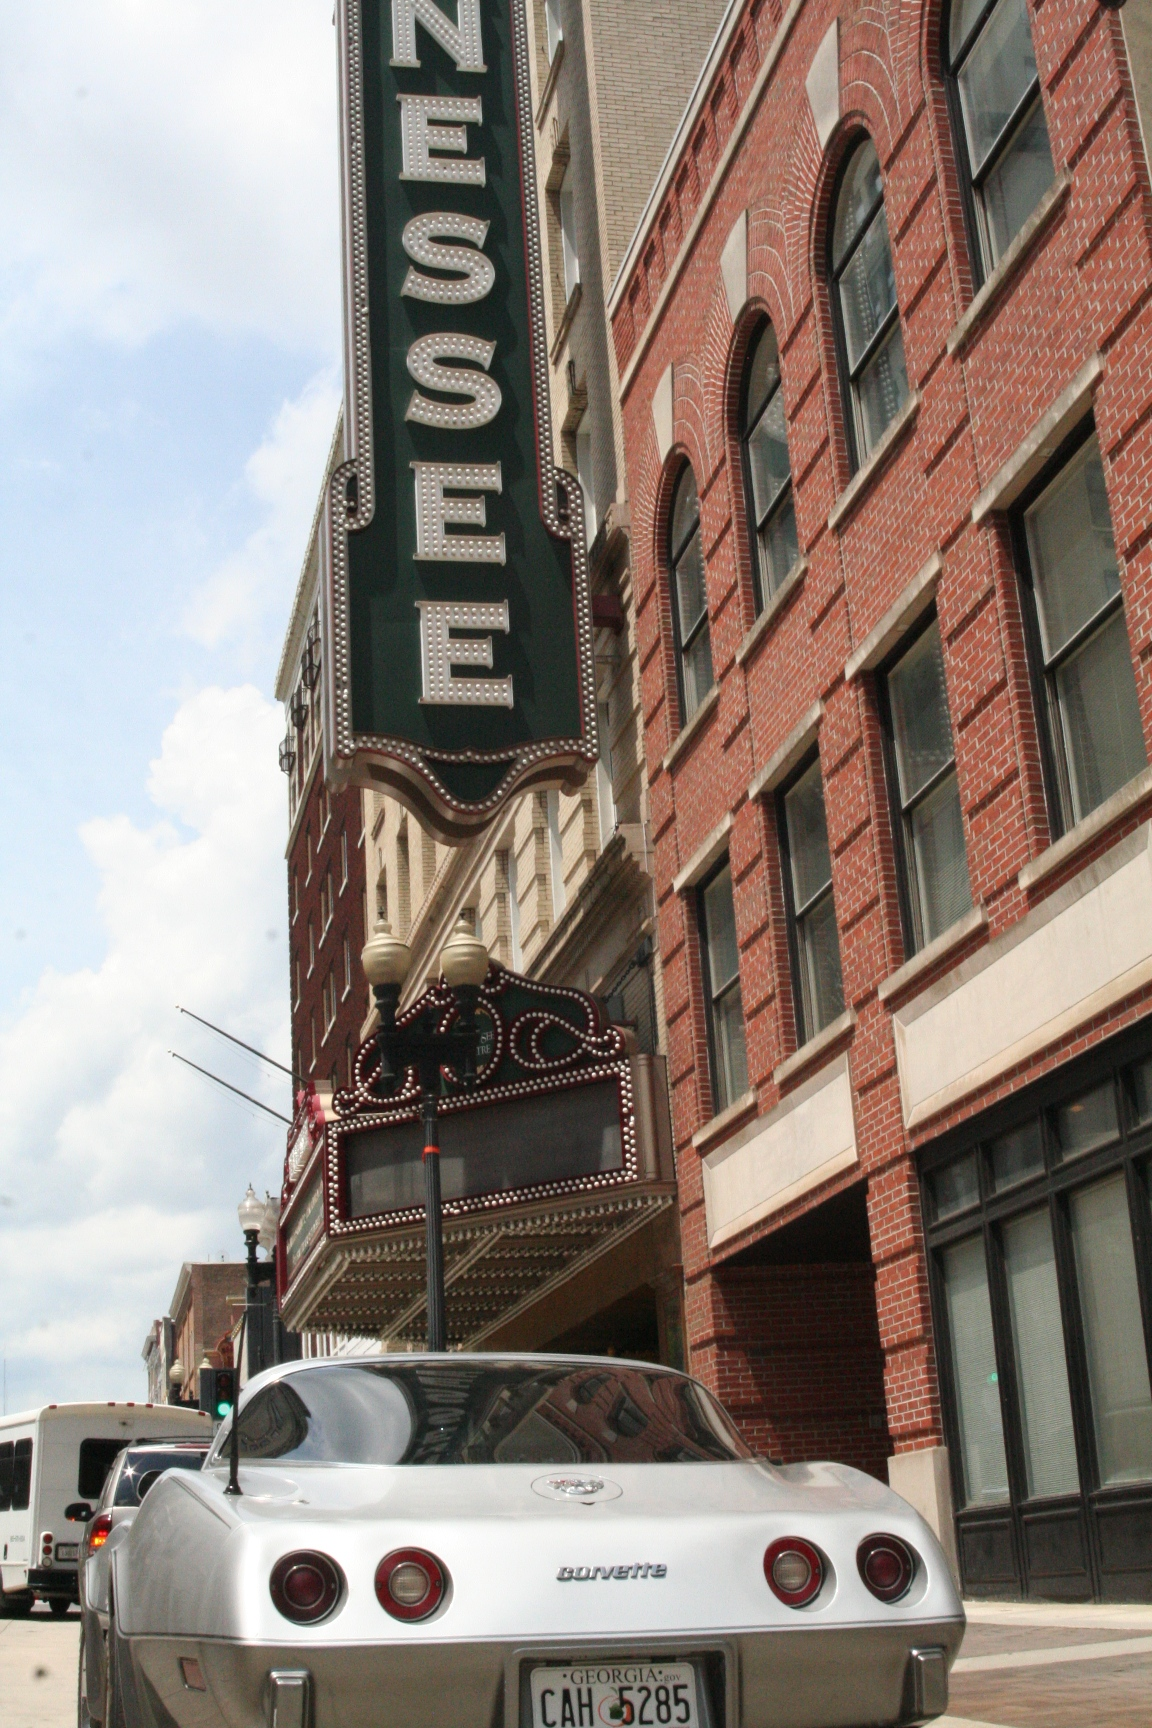 Tennessee Theater, Knoxville, Tenn.